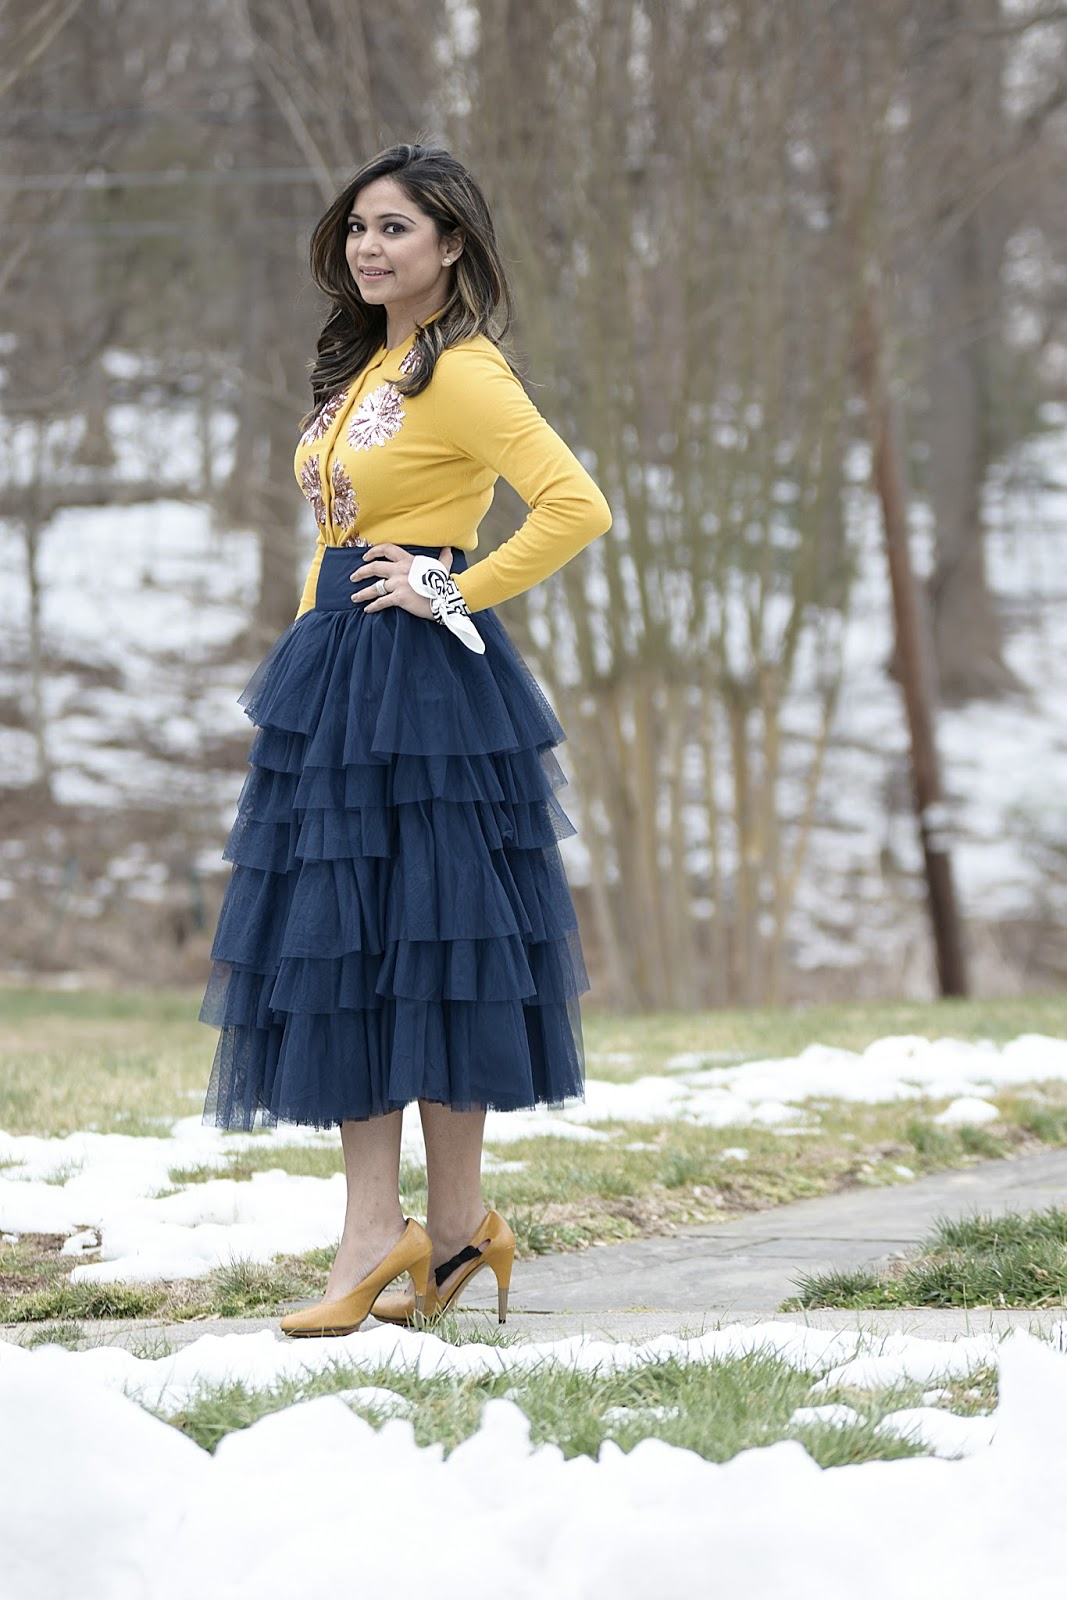 beauty and the beast, outfit of the day, whimsical dressing, street style, tulle skirt outfit, blue tulle skirt, fashion, style, blogger, dmv blogger, fashion stylist, holiday dressing,  skirt outfit, J crew yellow sequin cardigan, ASOS tulle skirt 4